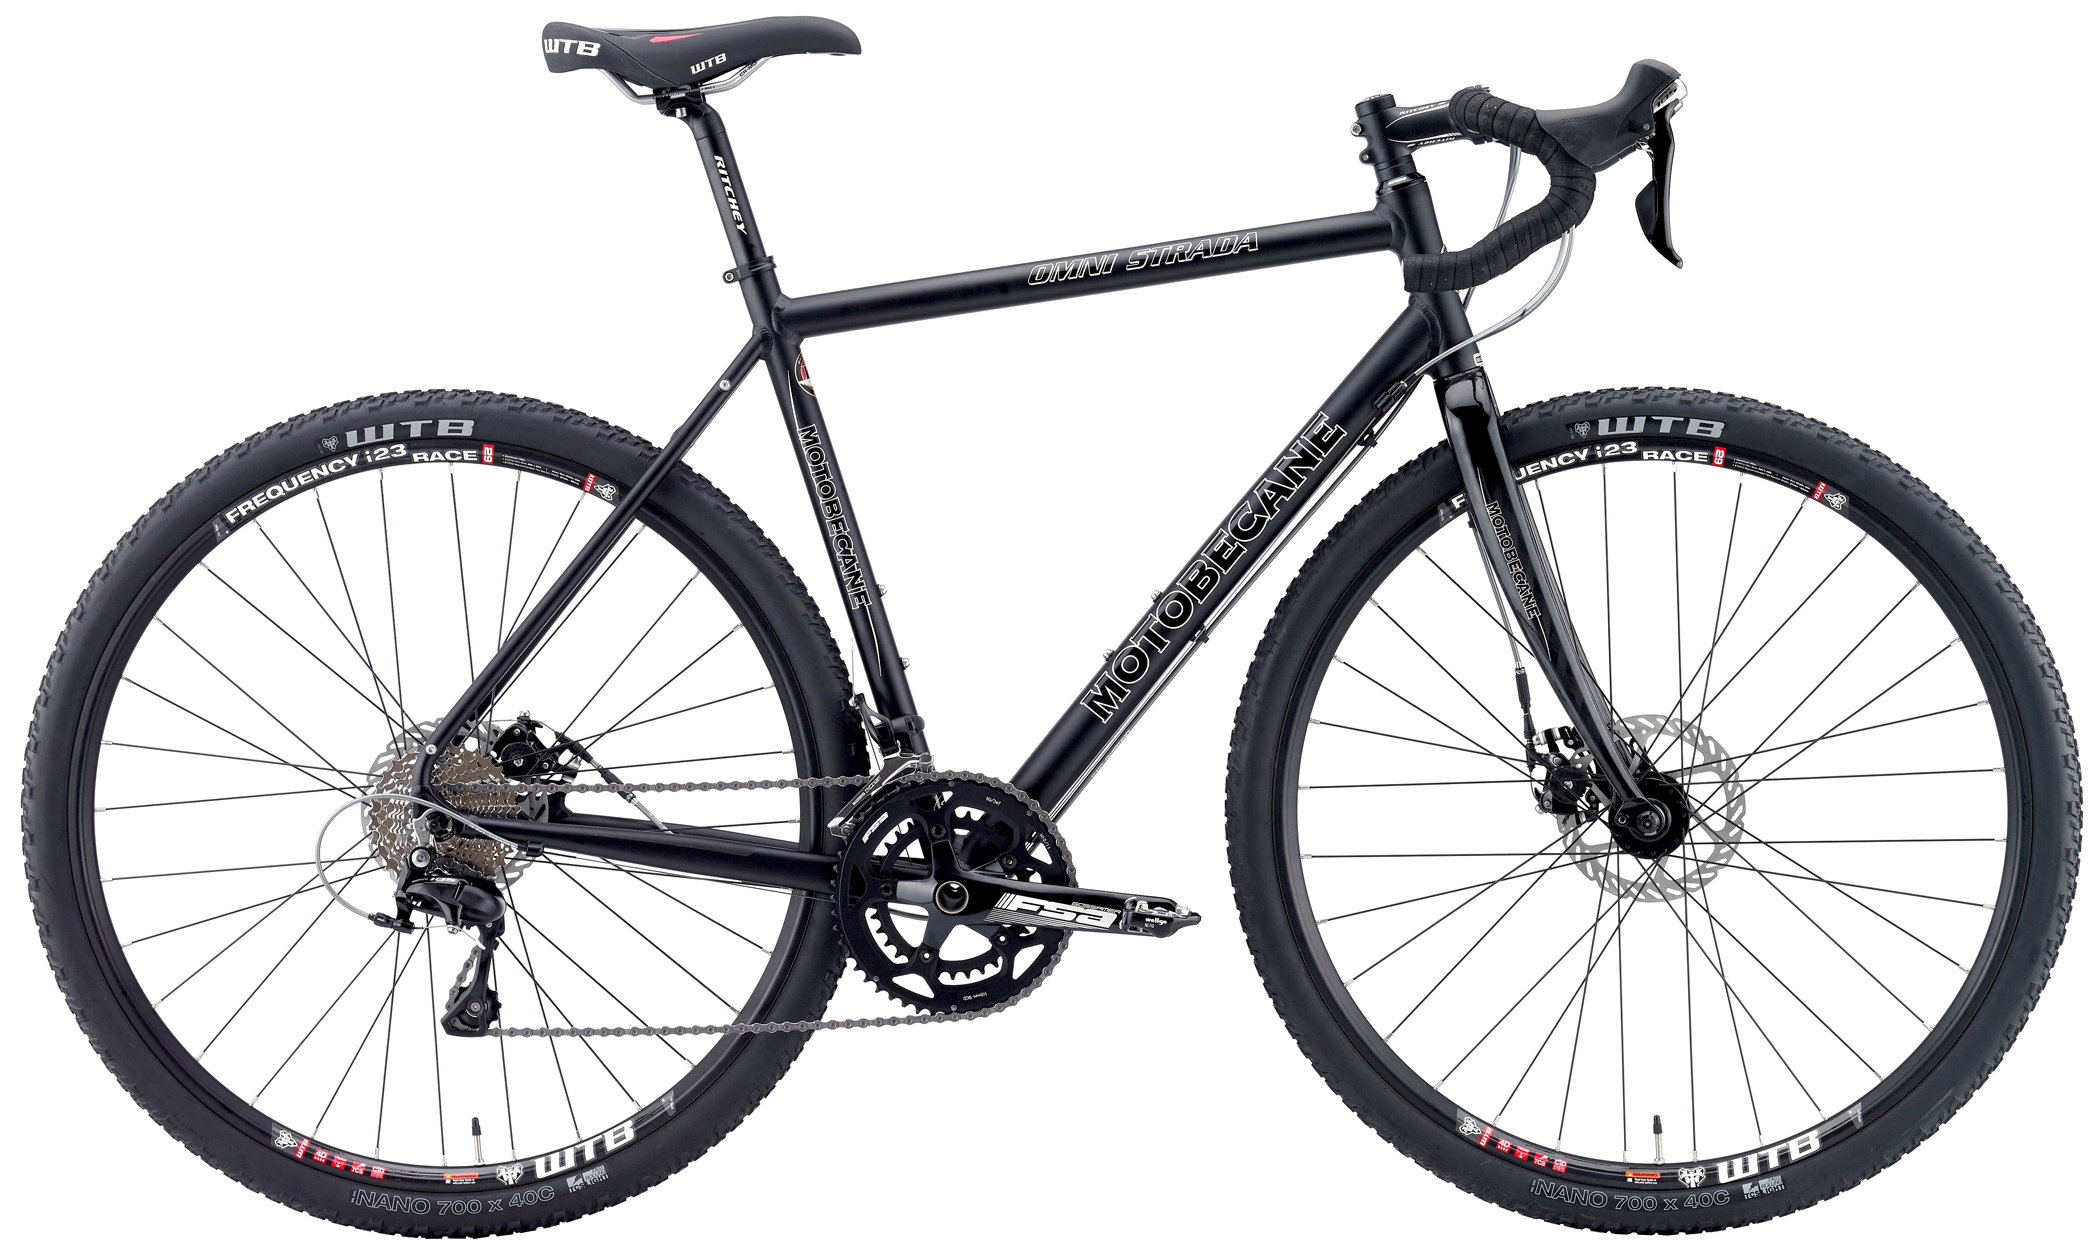 OMNI STRADA COMP - LIGHTWEIGHT ALUMINUM GRAVEL BIKE